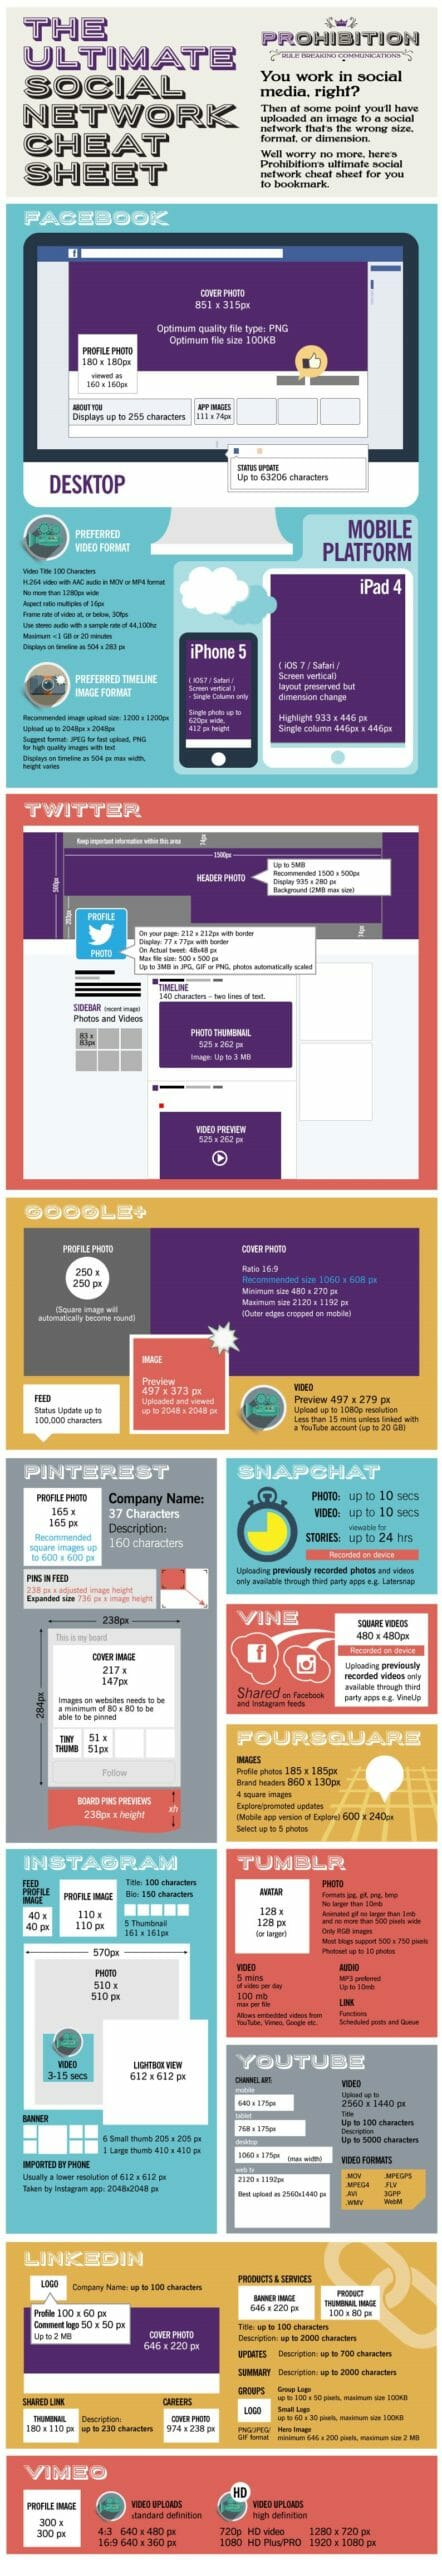 The Ultimate Social Media Size Cheat Sheet